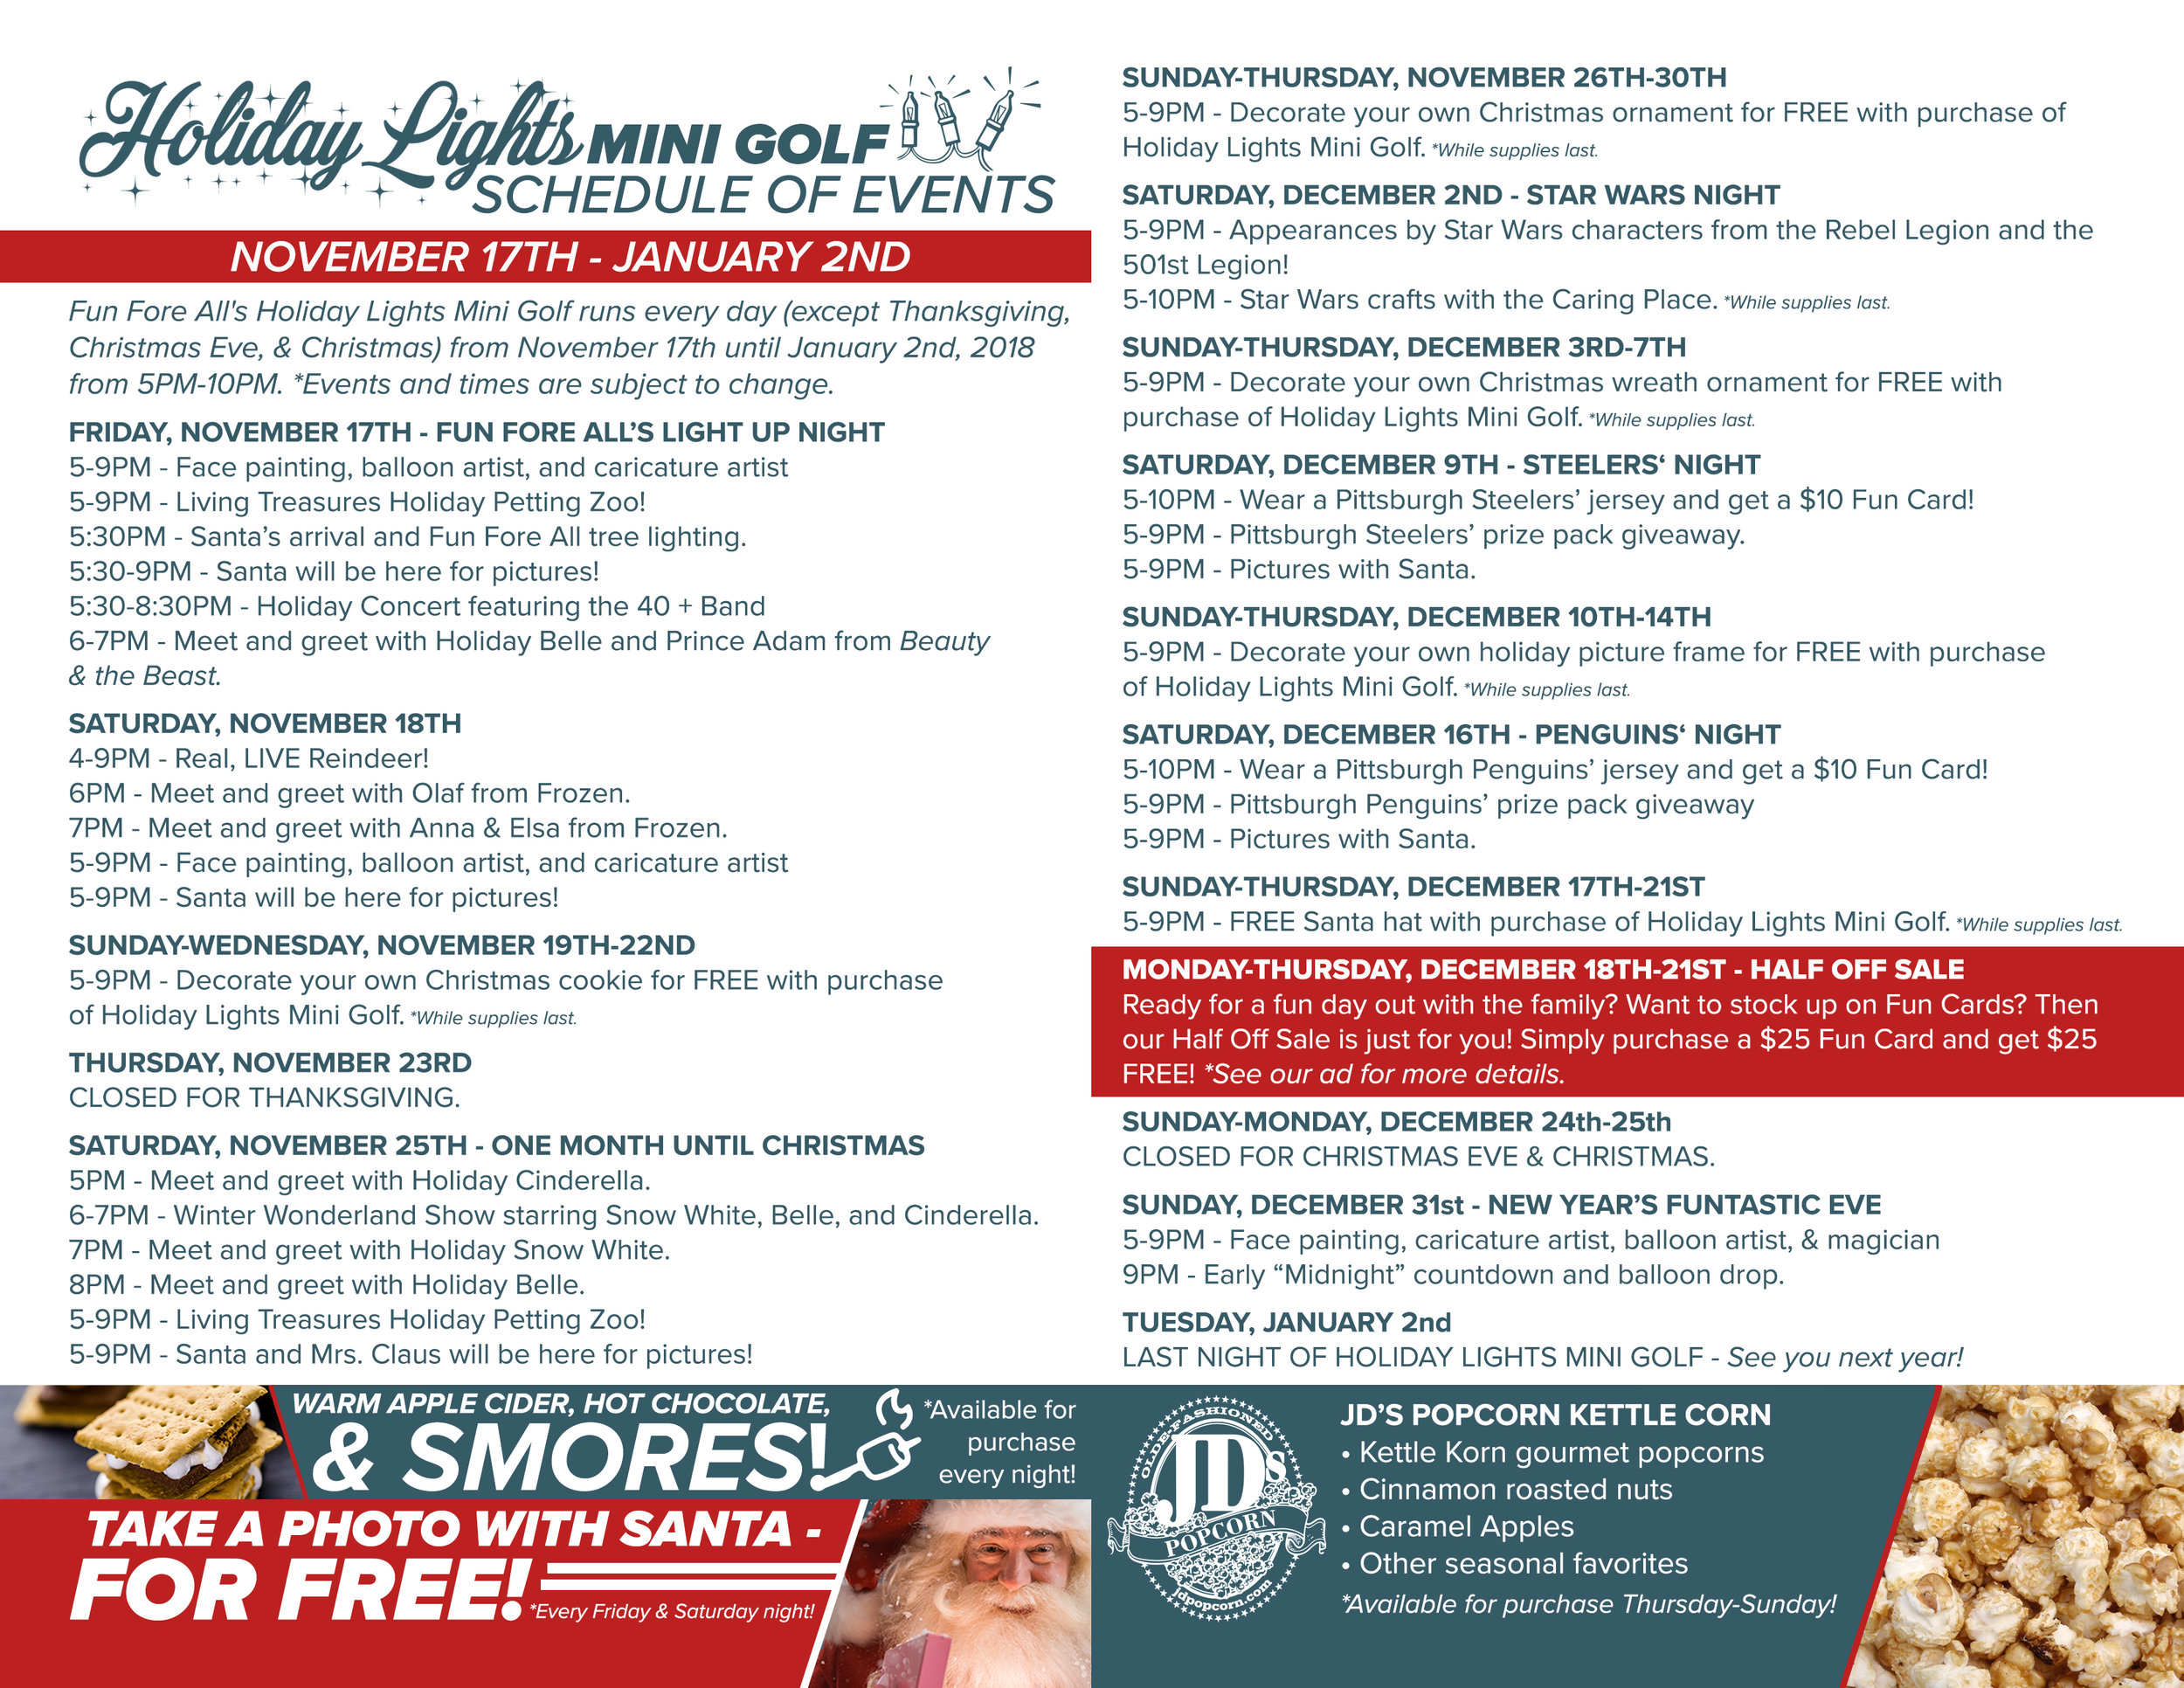 HOLIDAY LIGHTS  SCHEDULE - BACK (2017)